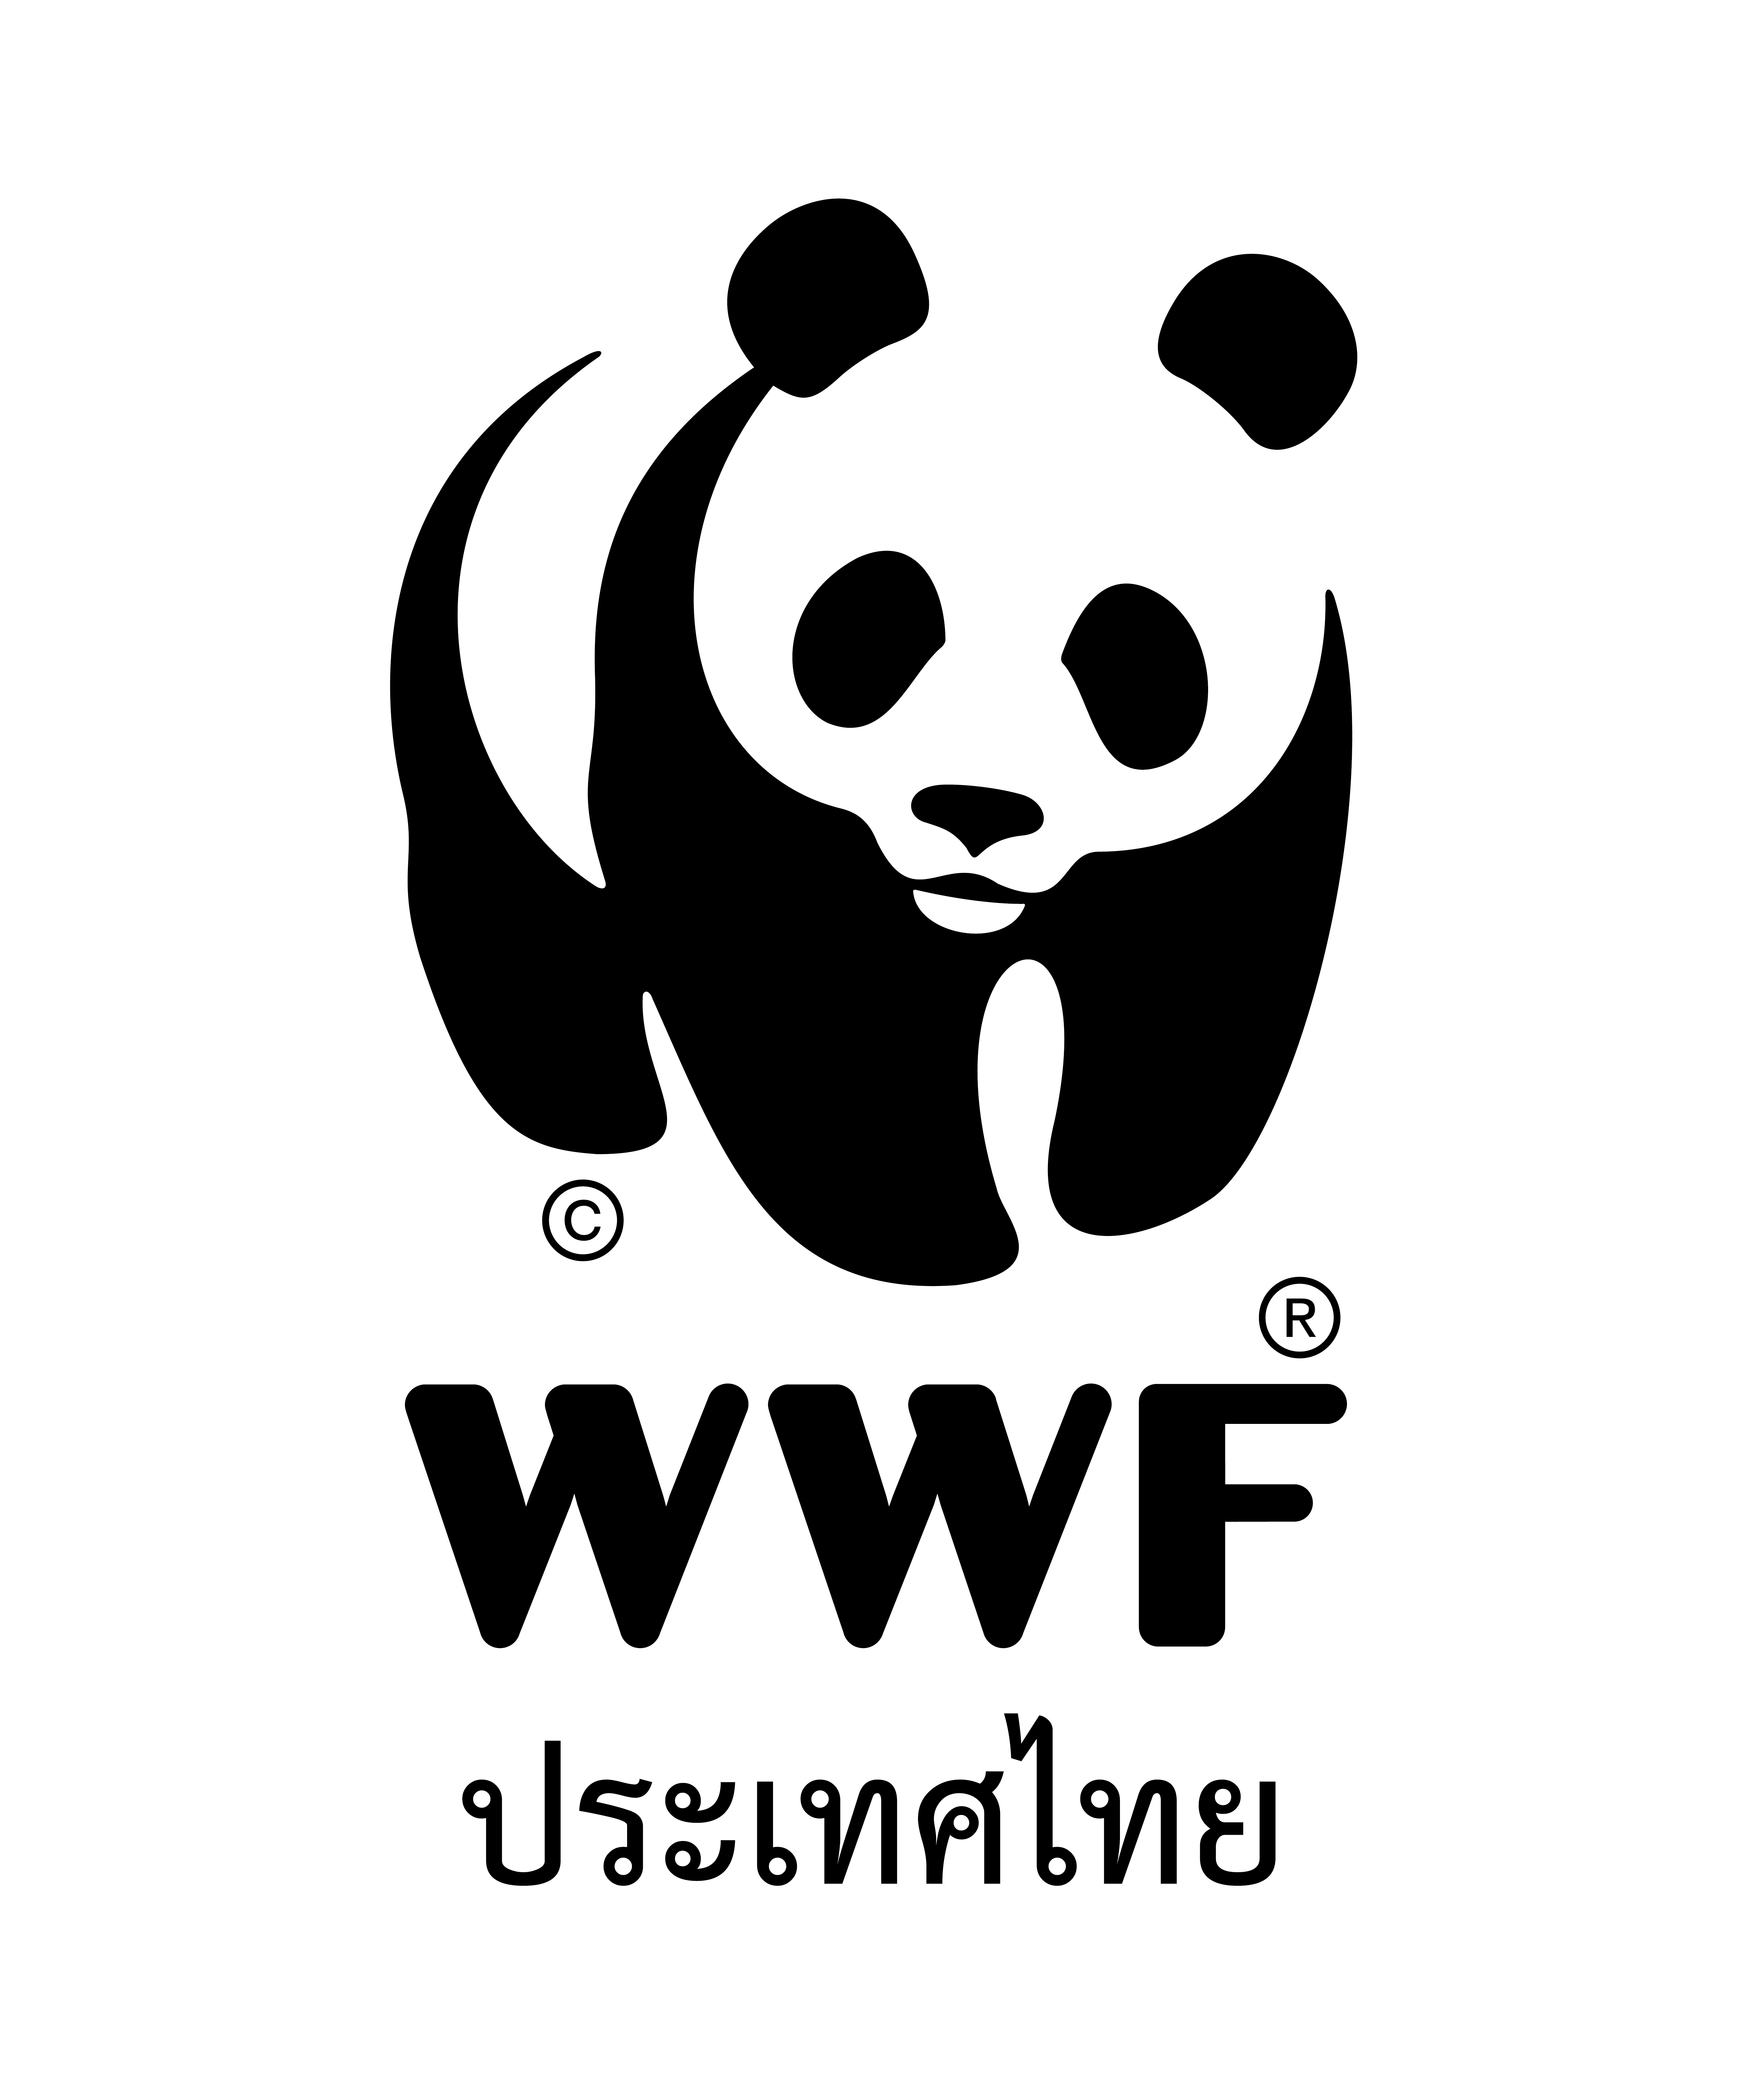 Tiger Lead, WWF Thailand Conservation Programme